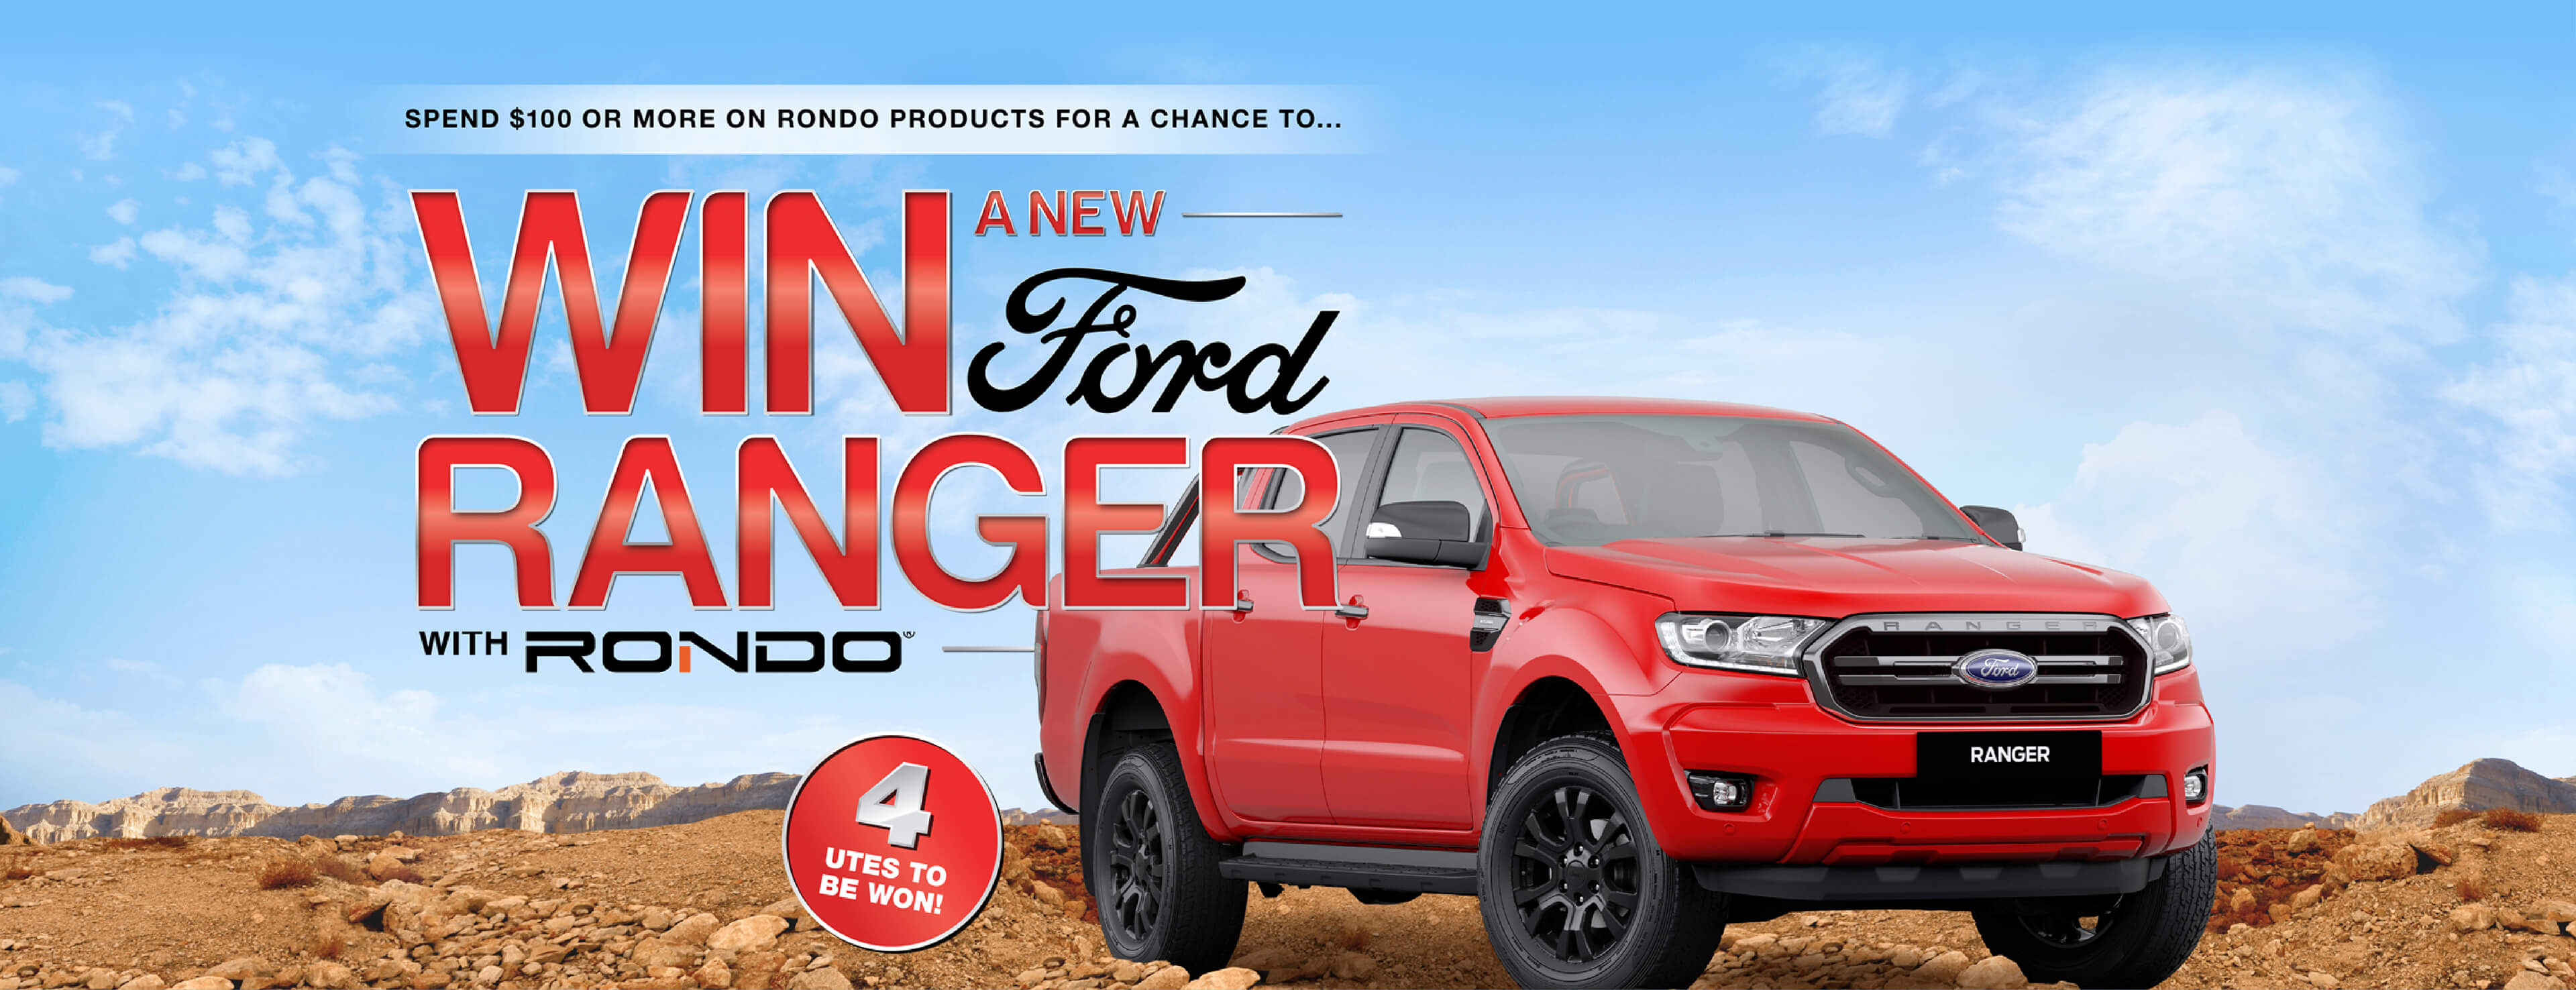 Win a new Ford Ranger with Rondo